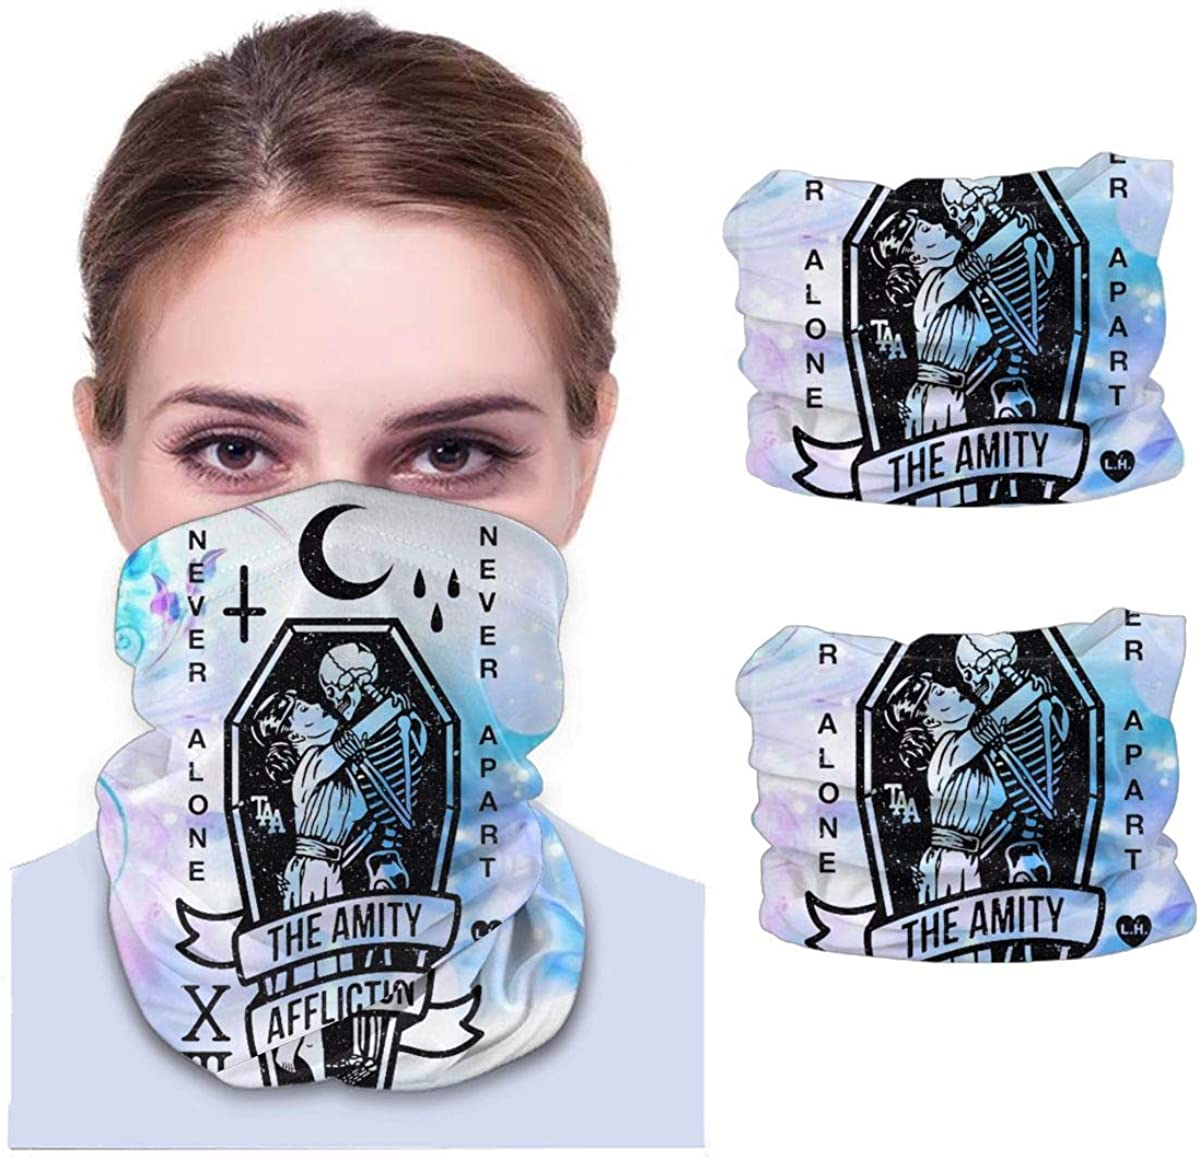 The Amity Affliction Neck Gaiter Face Scarf-Dust, Sun Protection Cool Lightweight Windproof